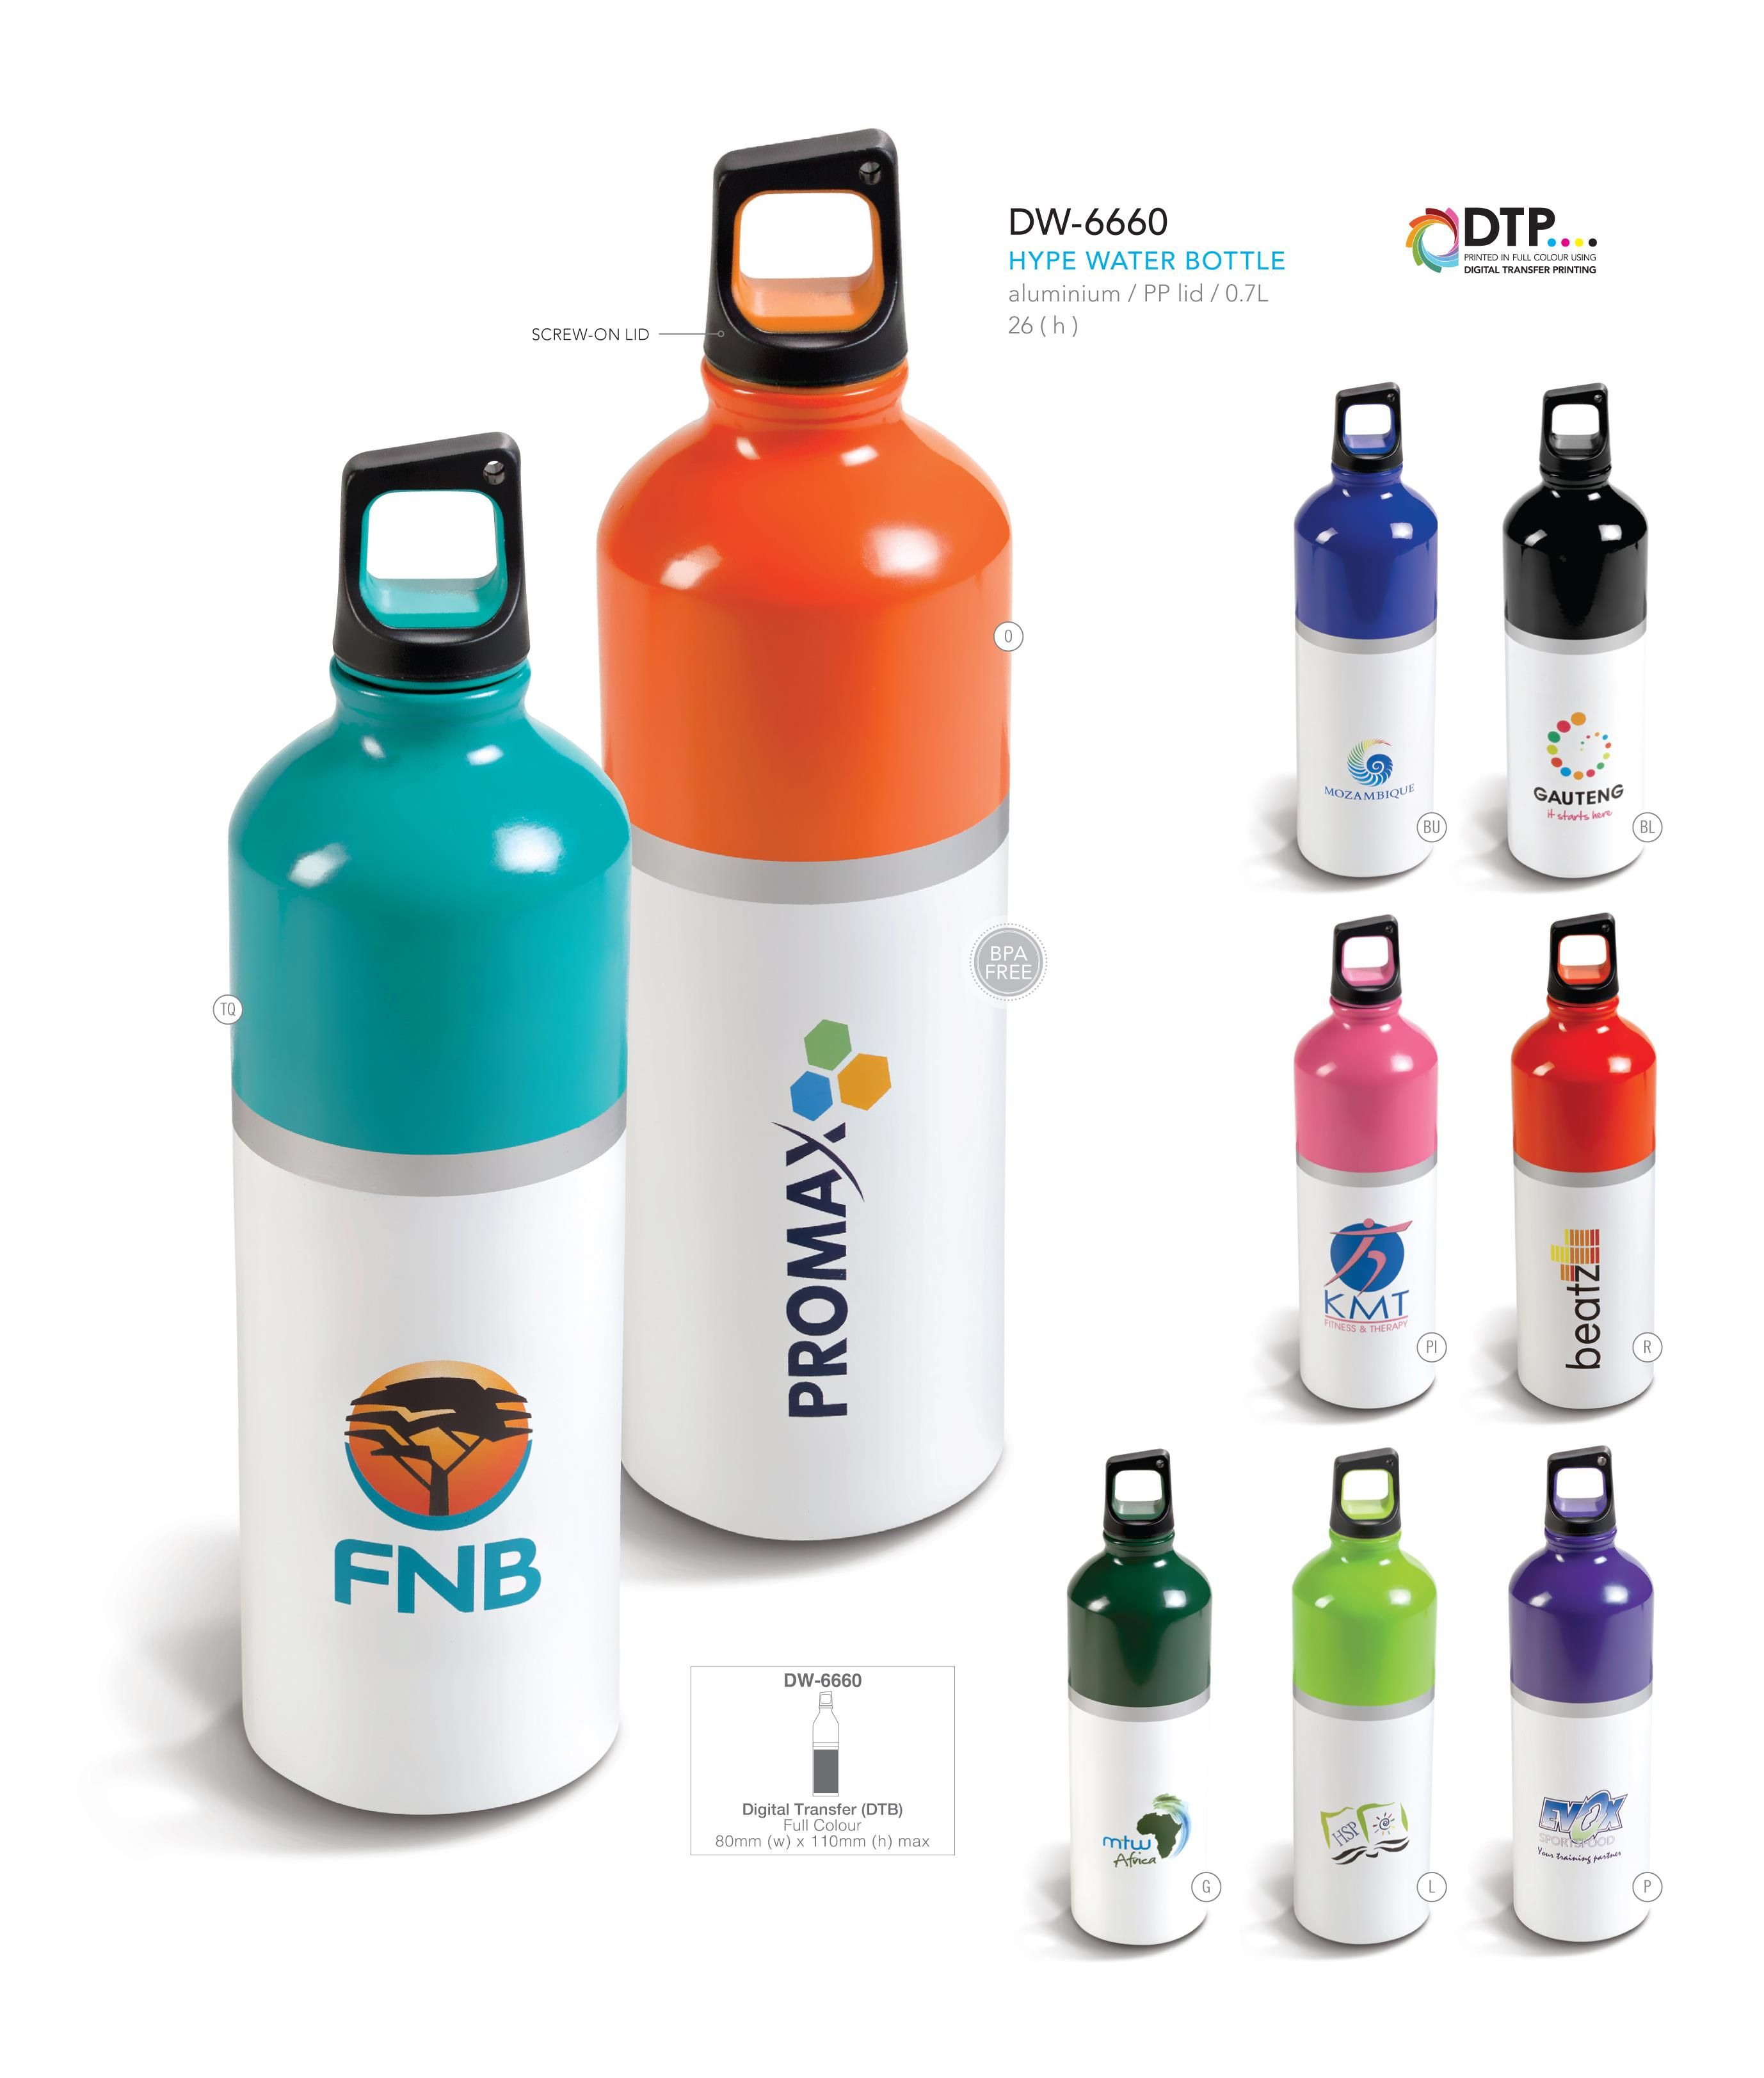 Hype Water Bottle Let us source and imprint that perfect